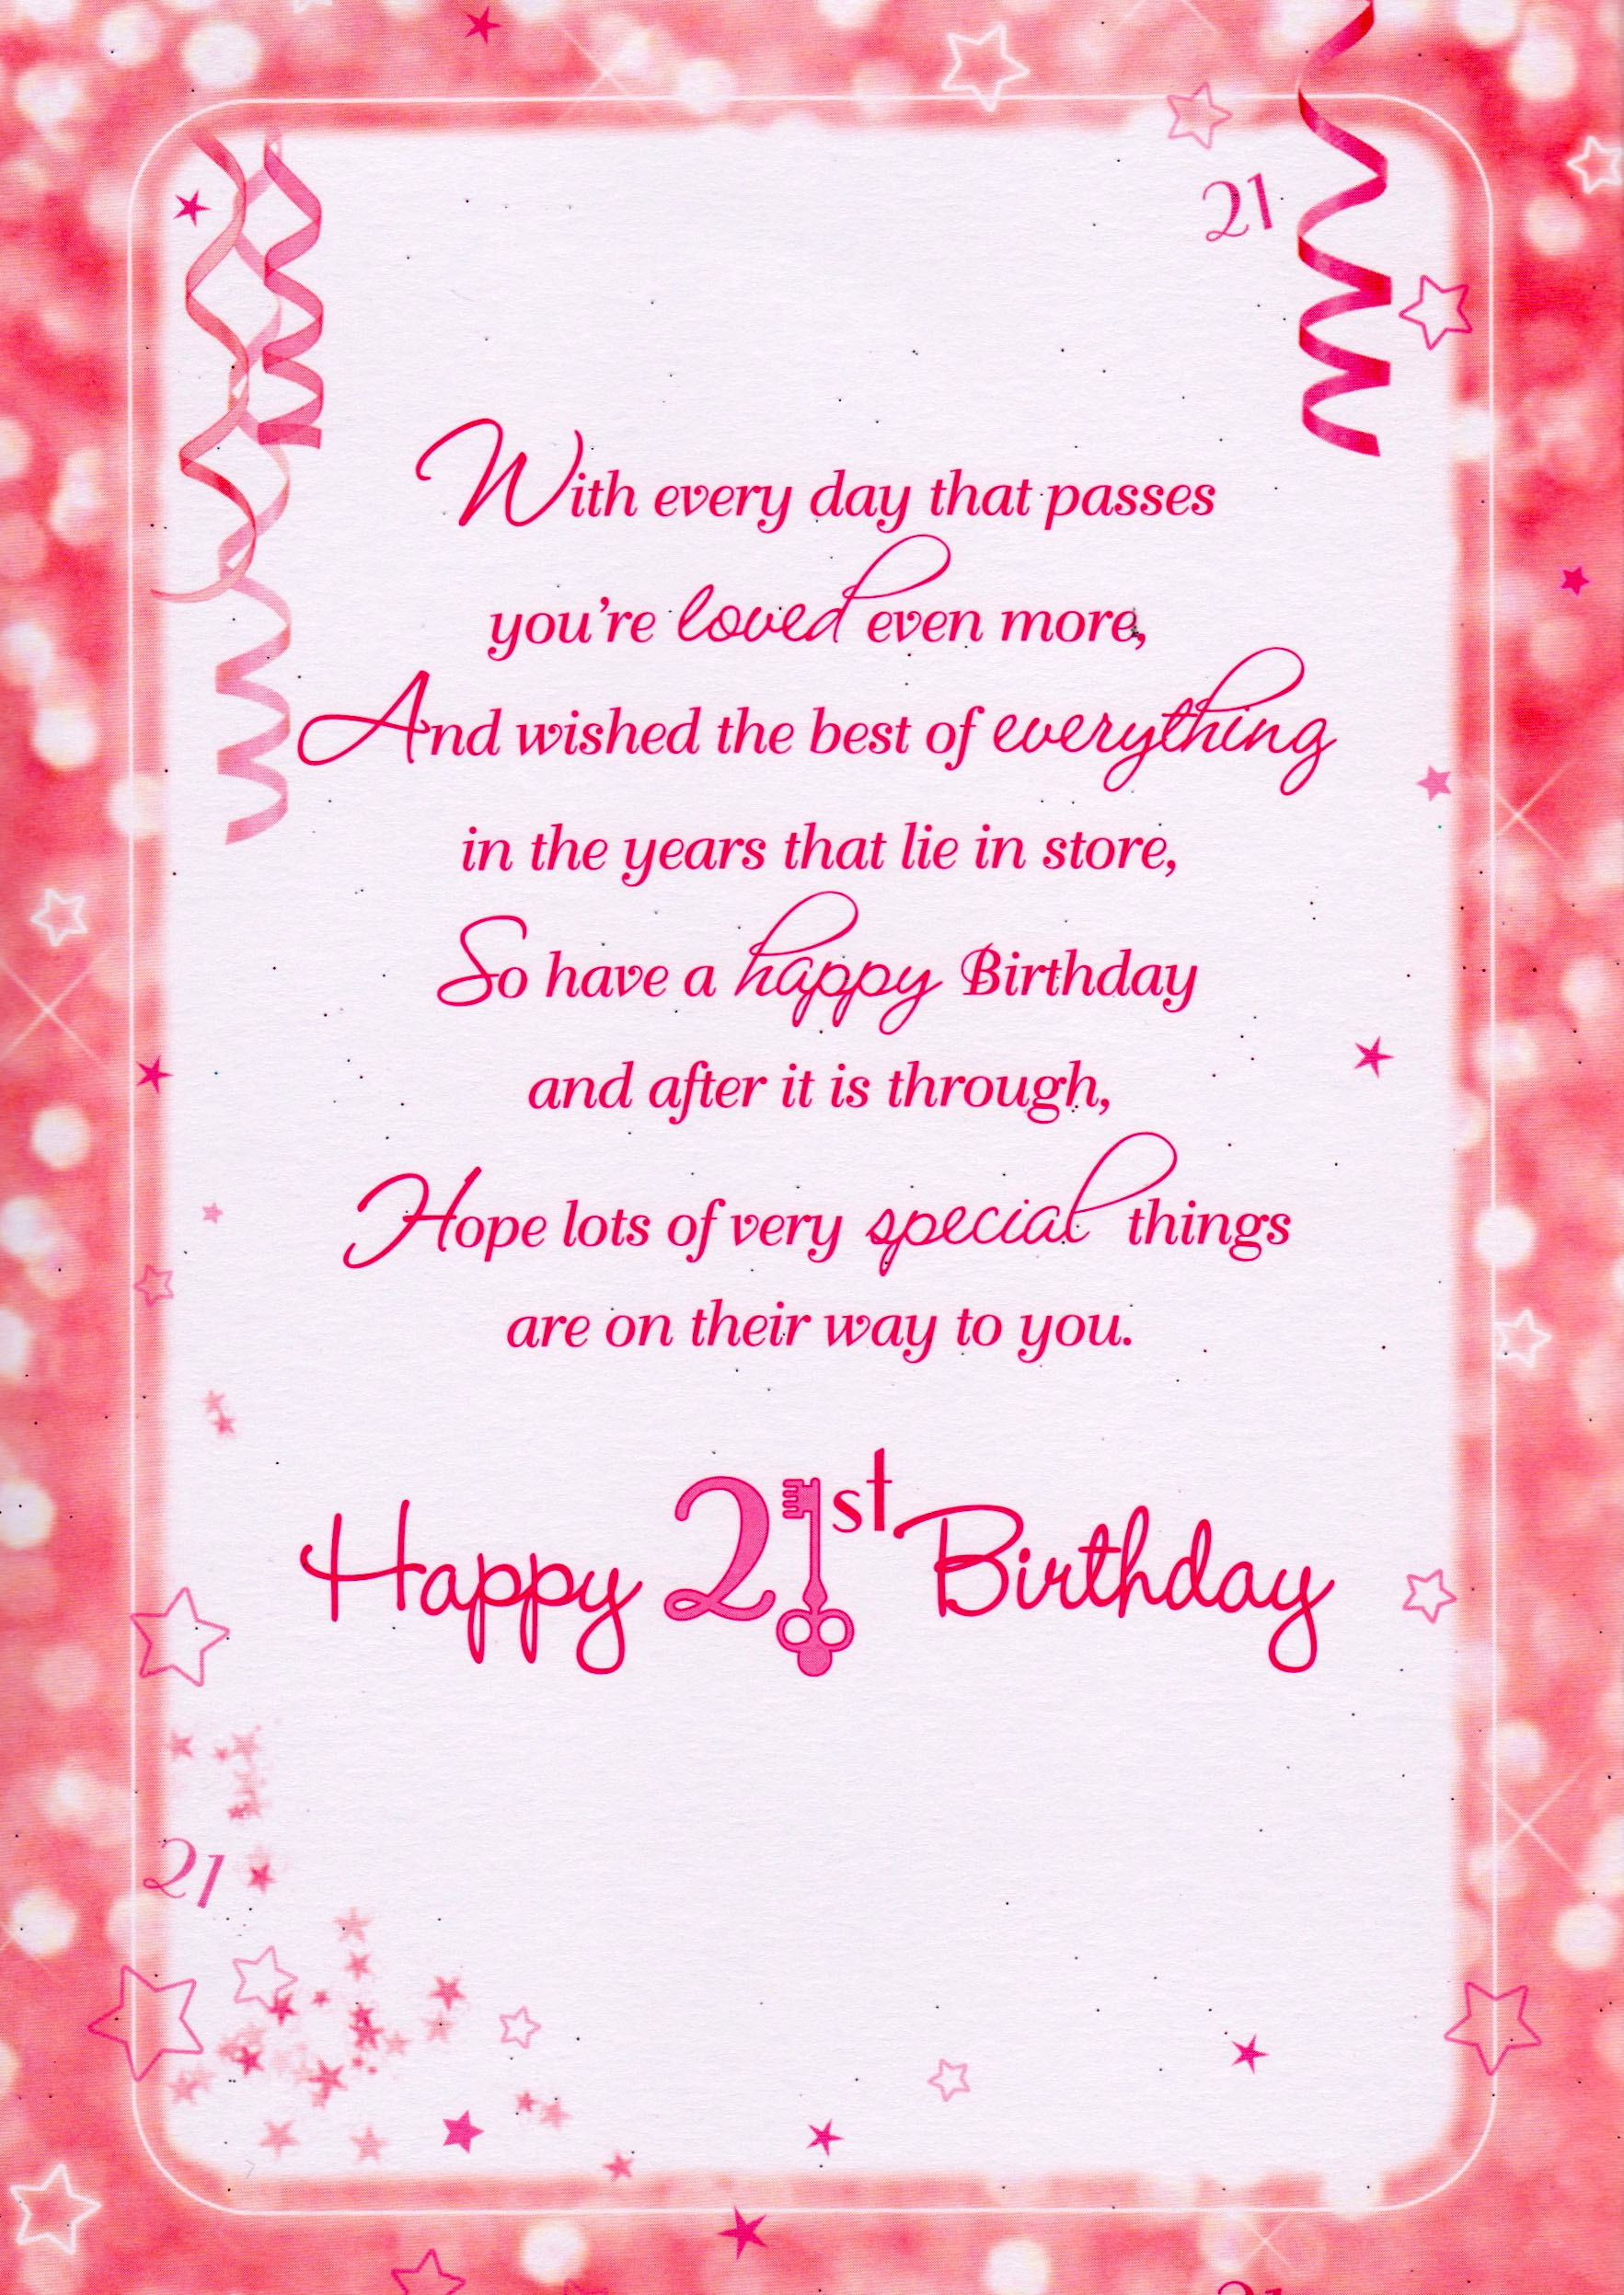 birthday greetings for friend with message ; 21st-birthday-wishes-and-messages-best-friend-1